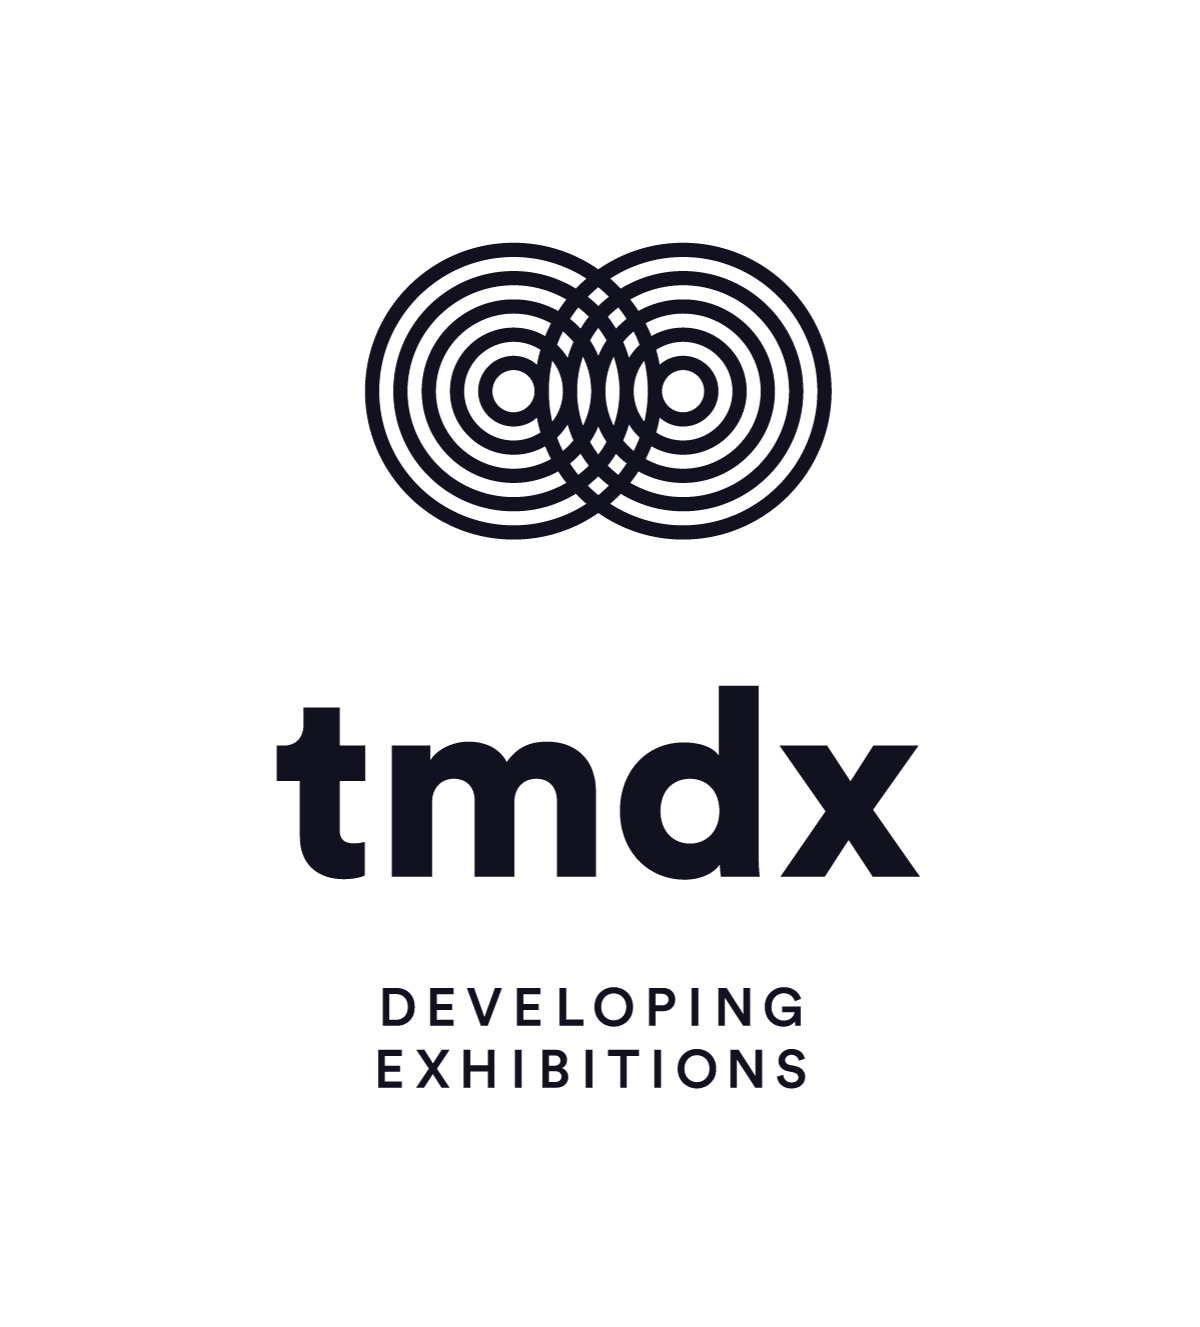 TM Development - your partner in building exhibitions